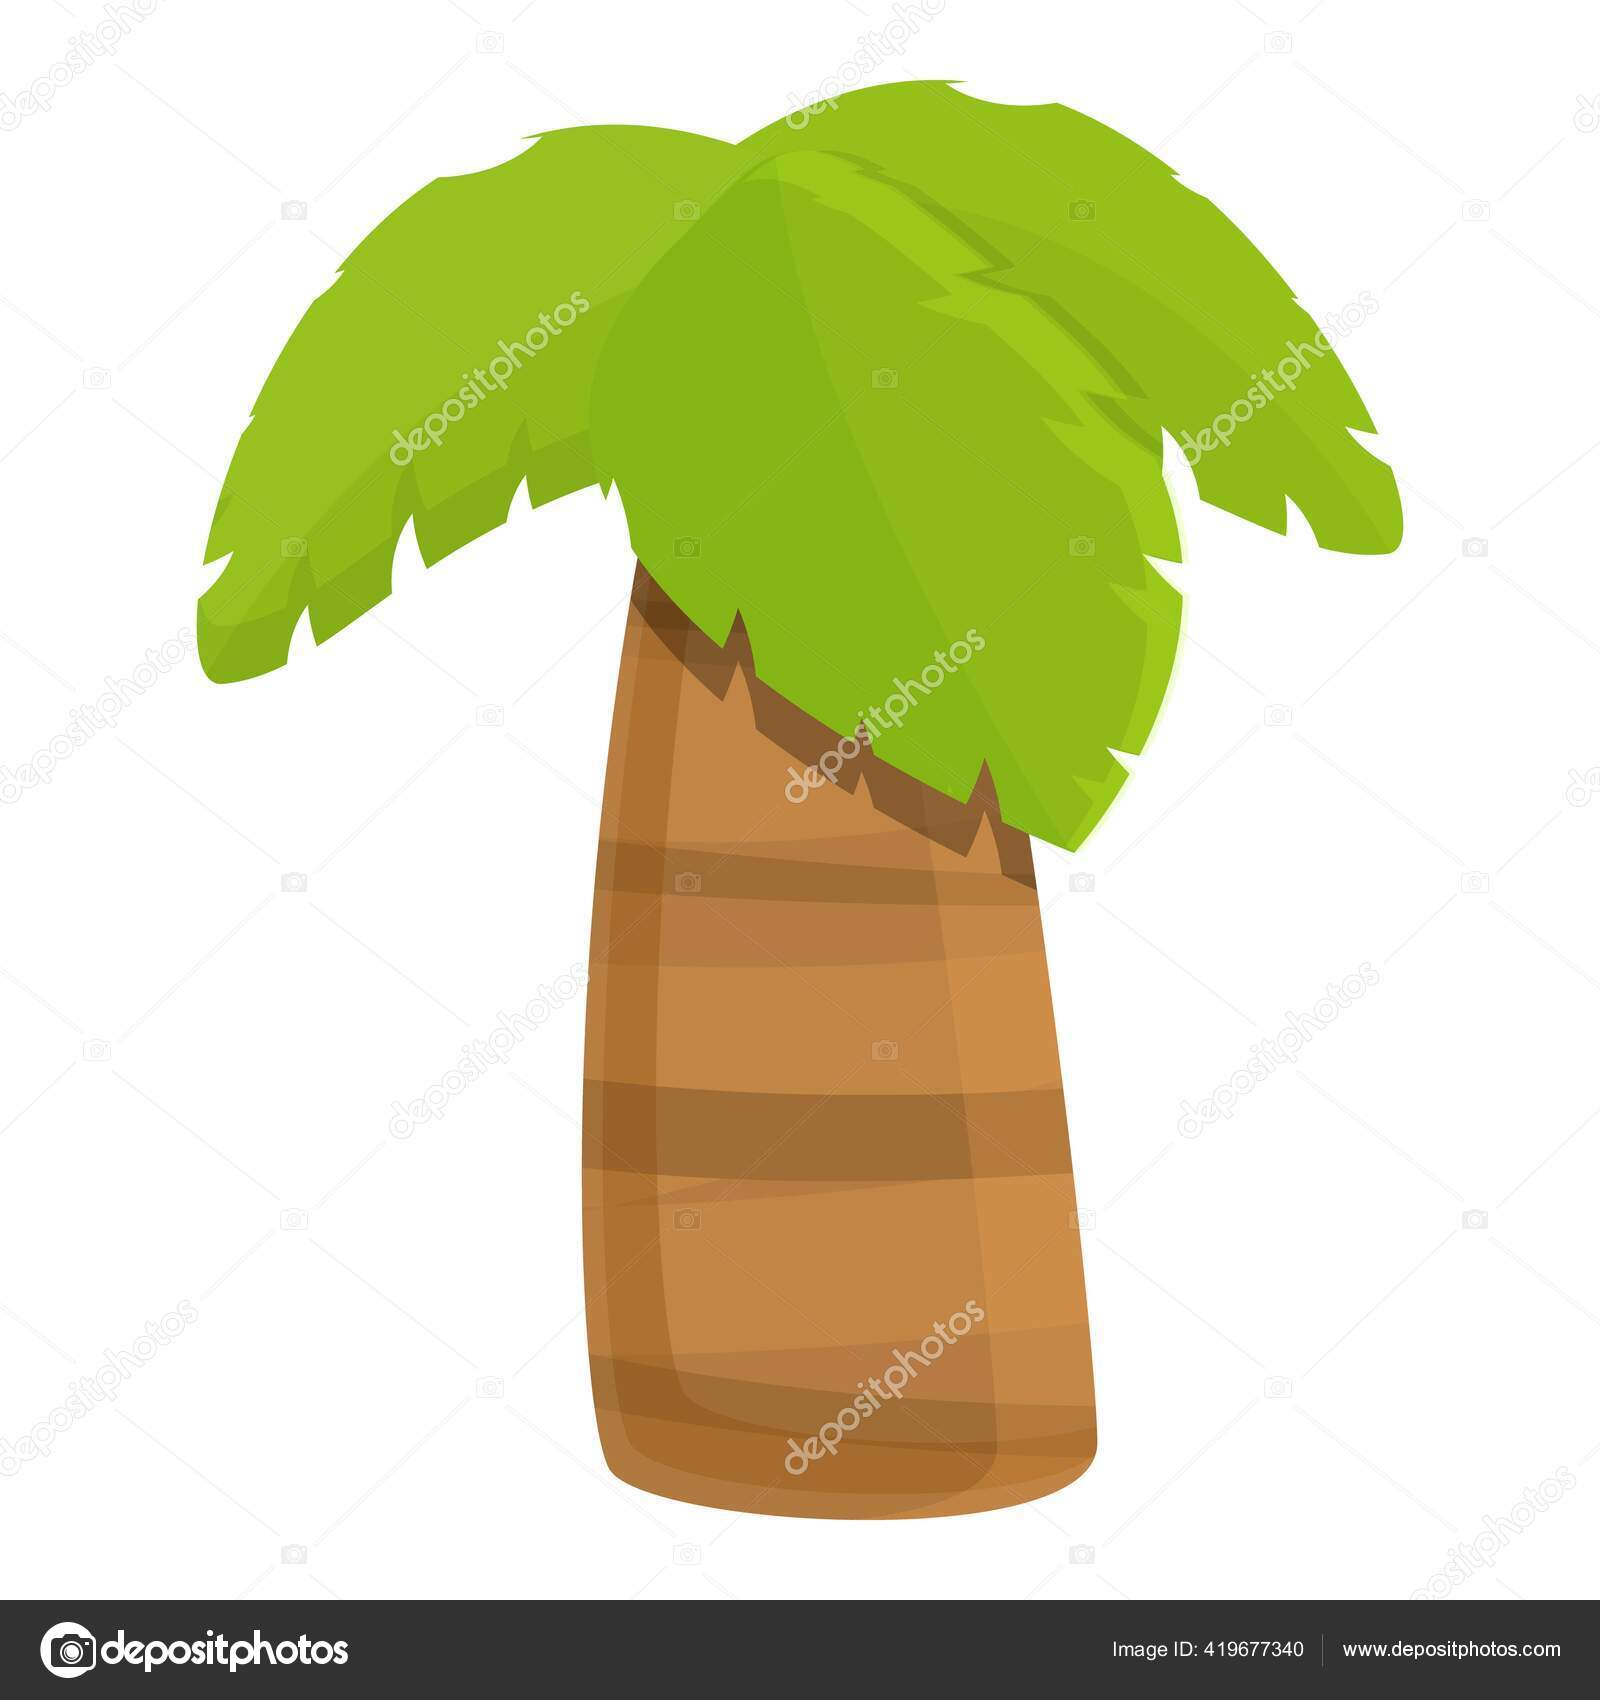 Thick Palm Tree Icon Cartoon Style Stock Vector C Nsit0108 419677340 Find & download free graphic resources for tree icon. https depositphotos com 419677340 stock illustration thick palm tree icon cartoon html